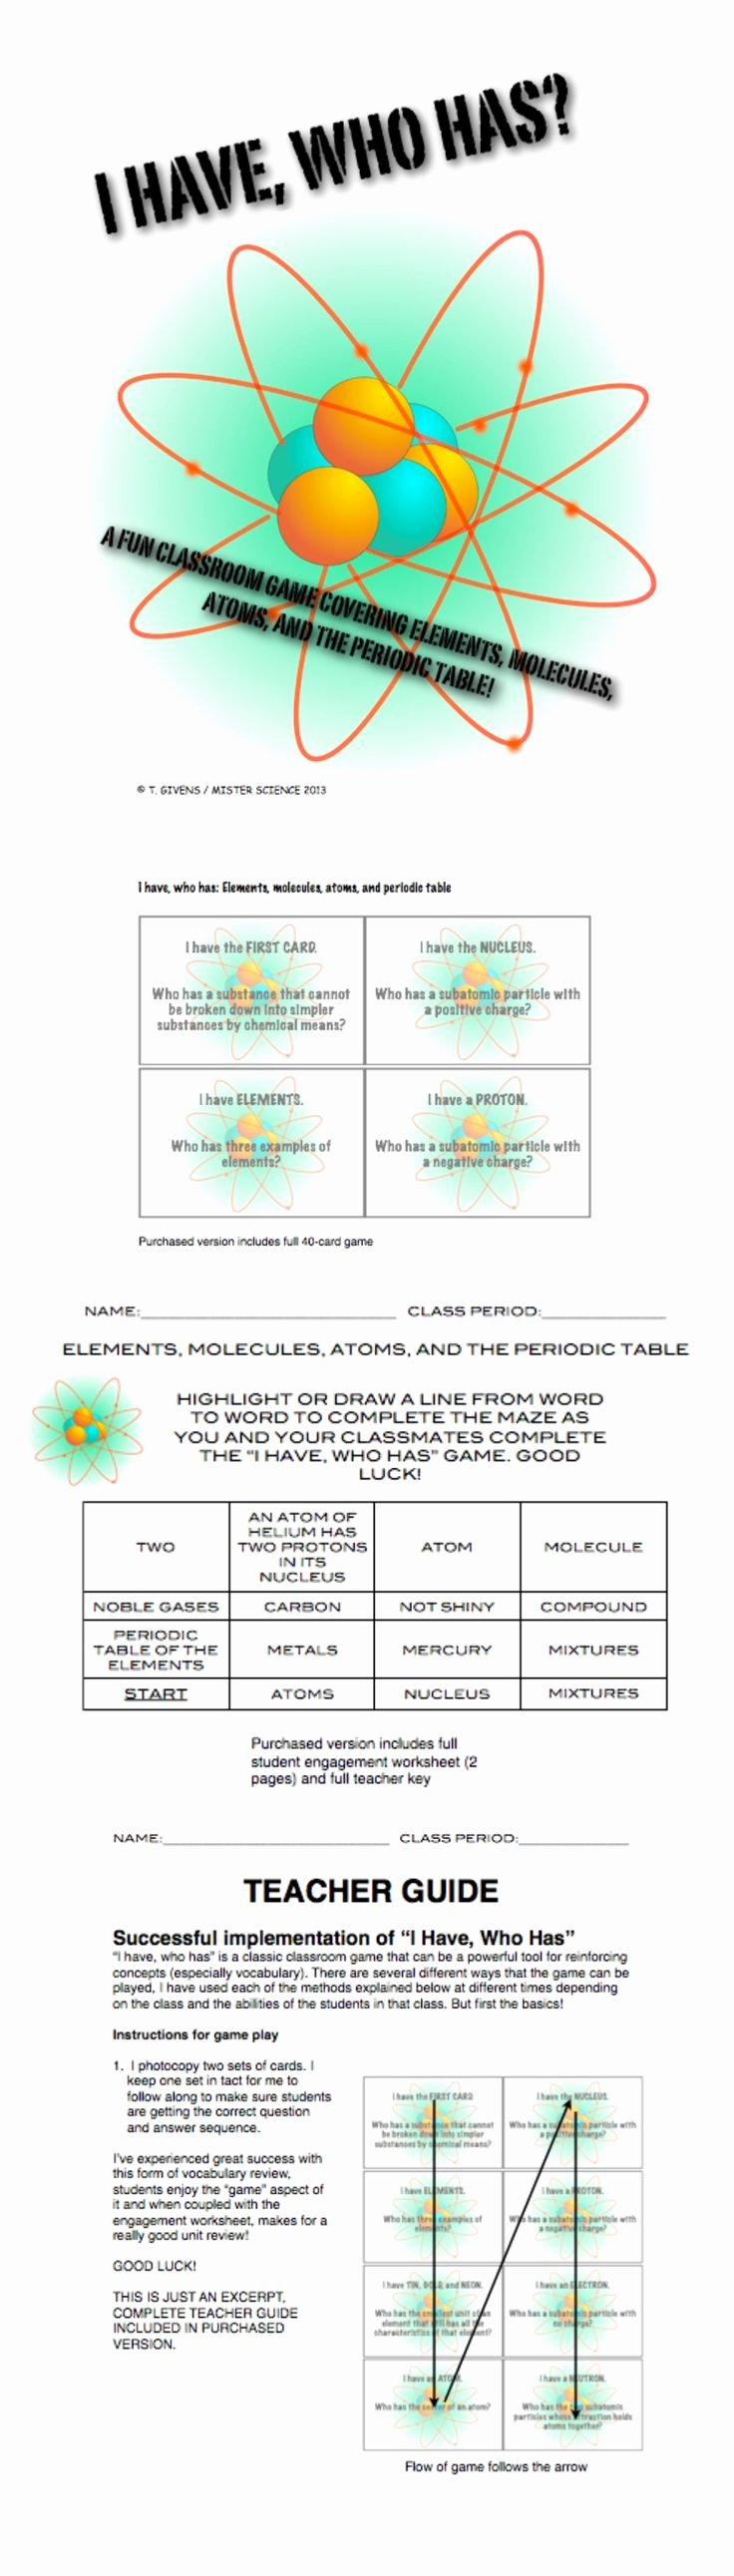 Periodic Table Review Worksheet Unique I Have who Has Game atoms Periodic Table Molecules Chem